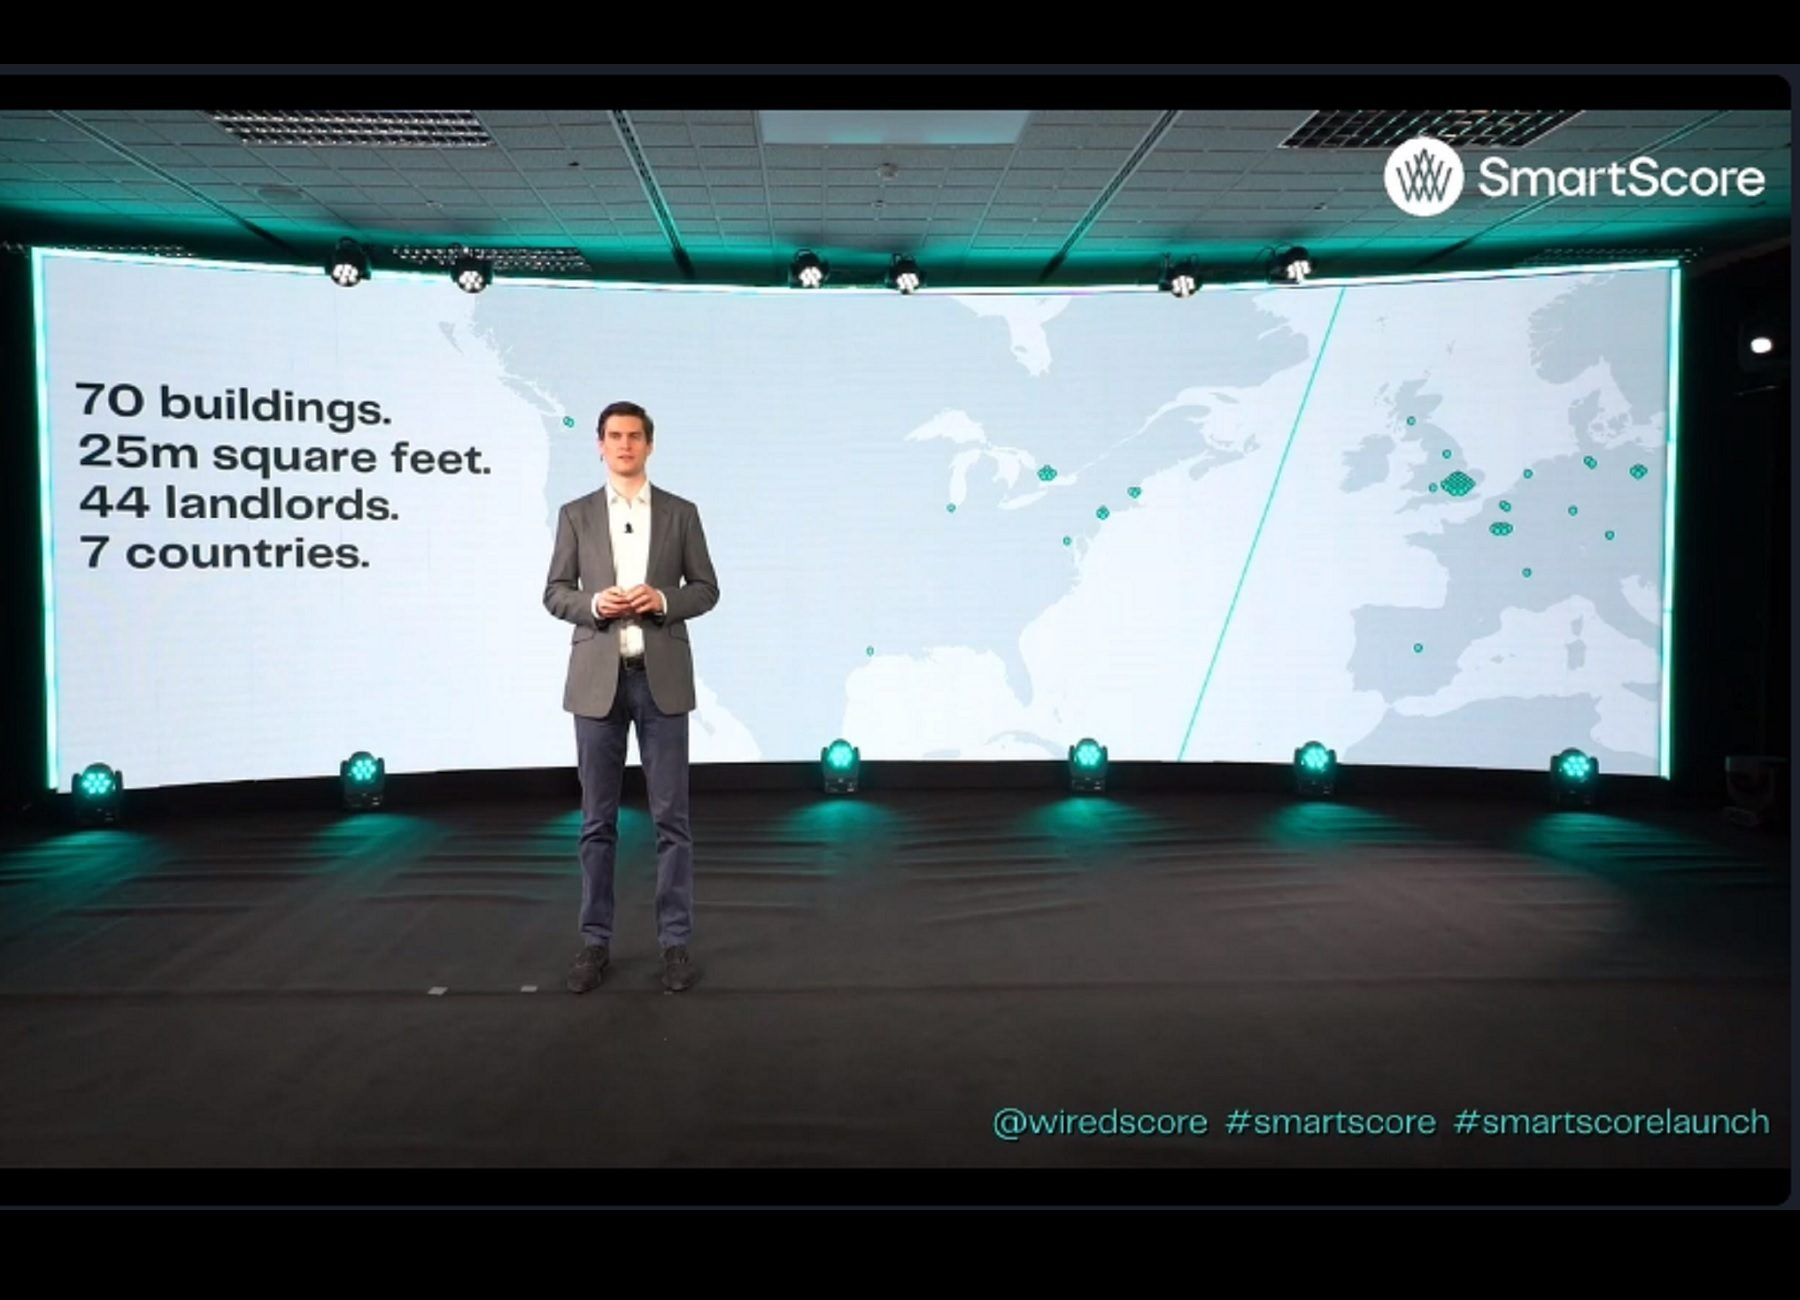 What the launch of SmartScore means for Smart